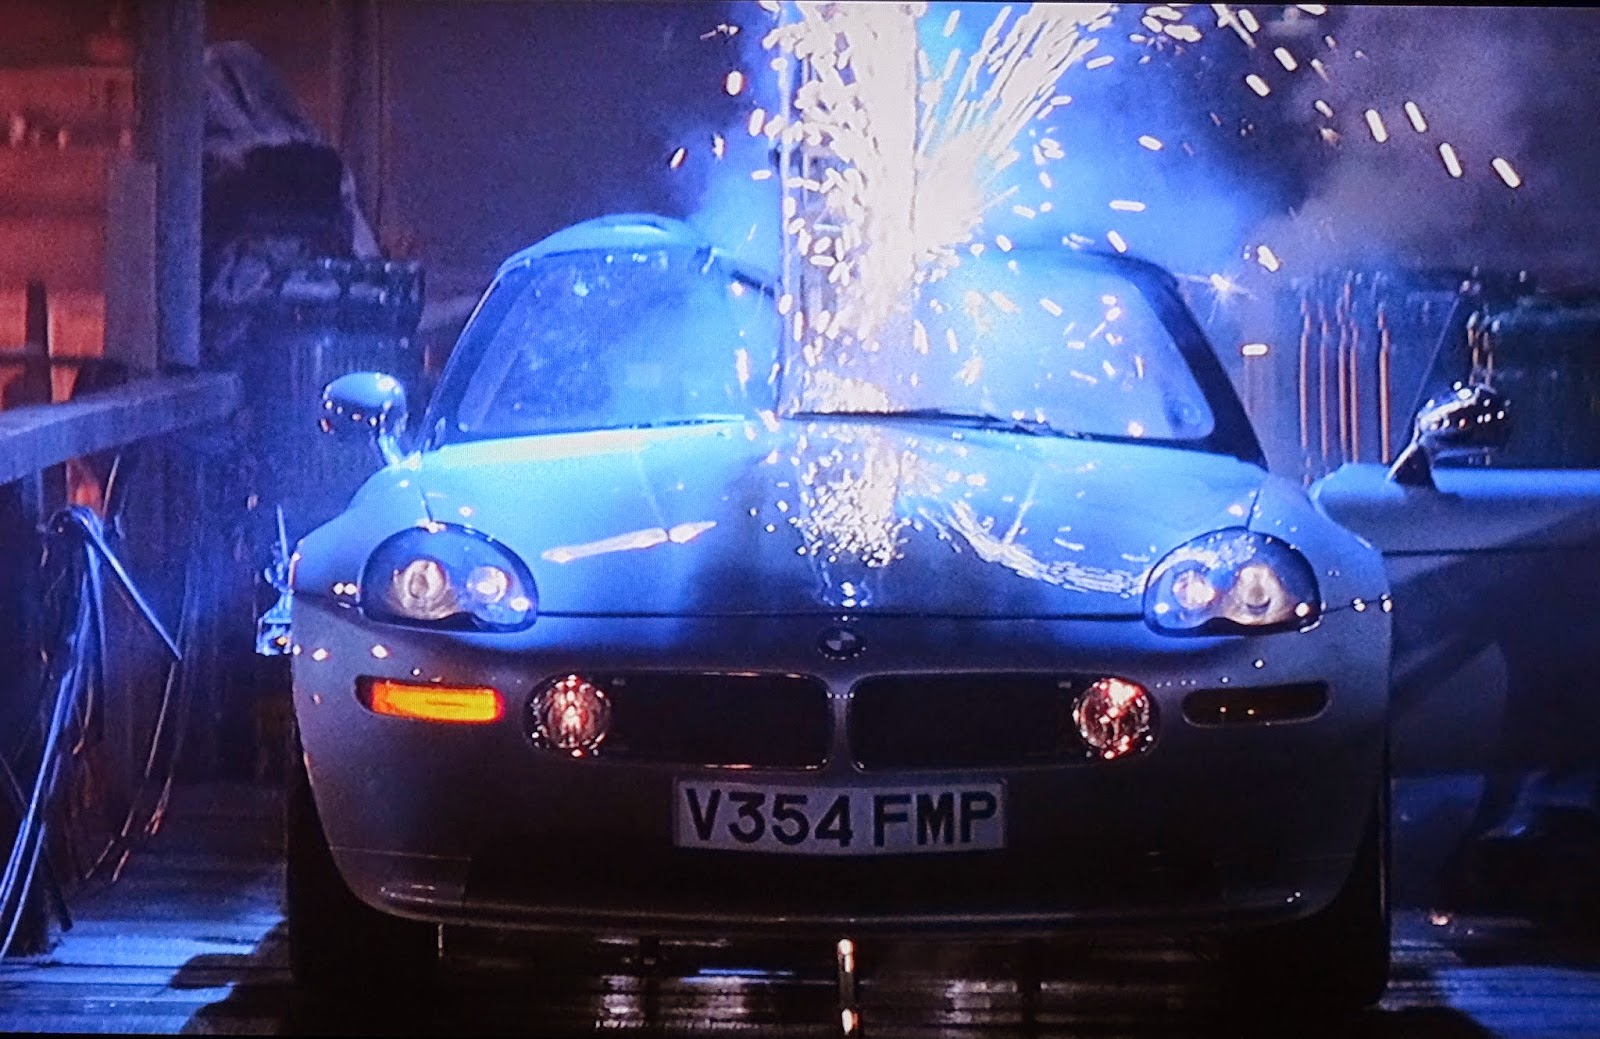 007 Travelers 007 Vehicle Bmw Z8 The World Is Not